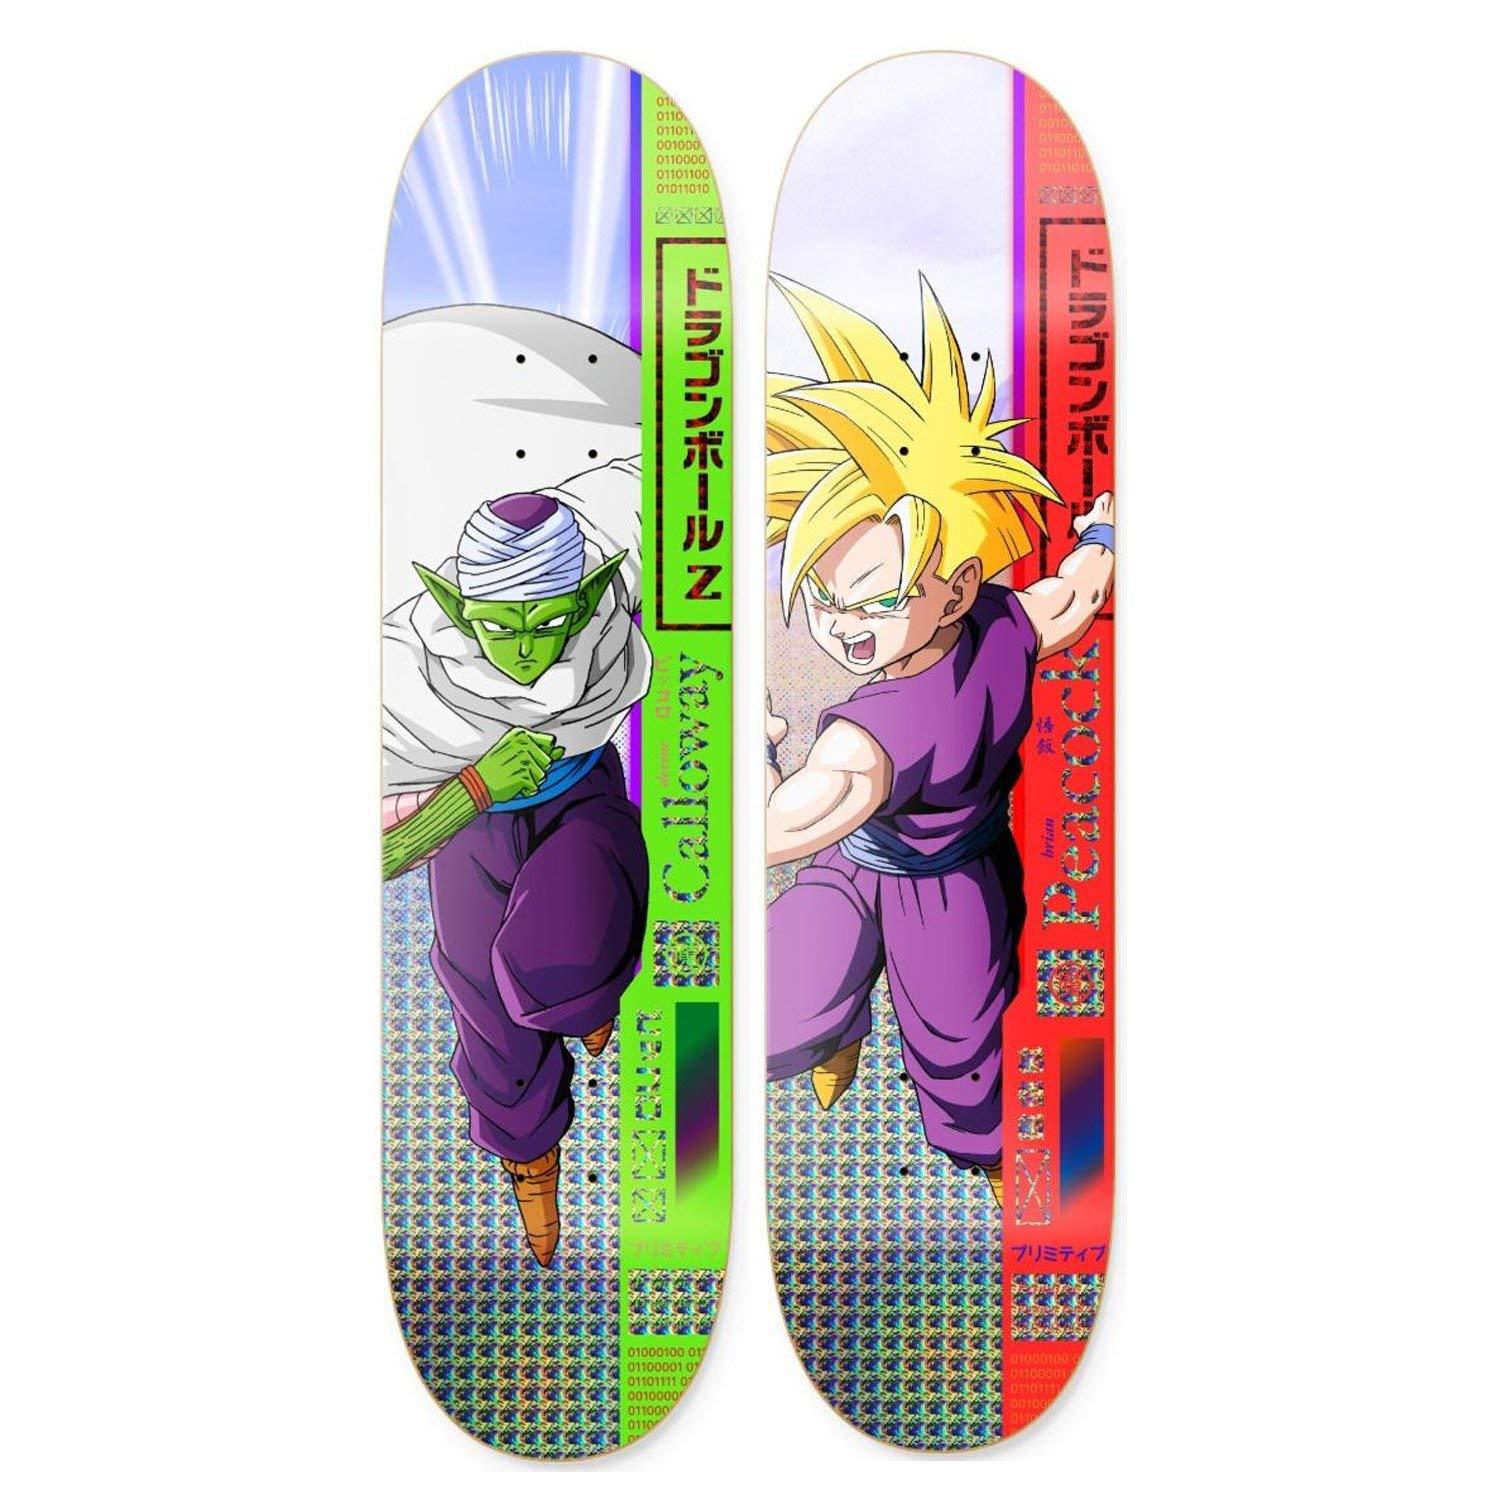 Primitive Dragon Ball Z Skateboard Decks Piccolo Gohan 2 Pack DBZ Deck BULK